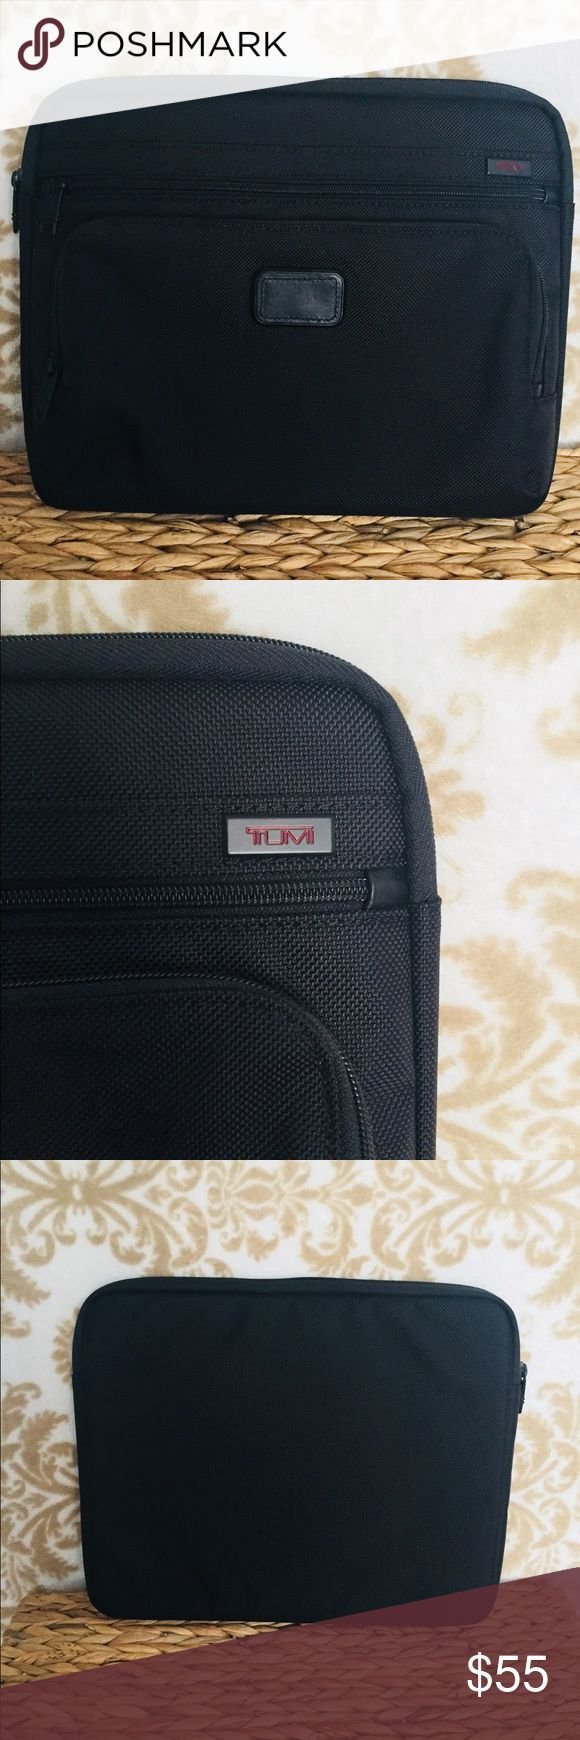 """TUMI Laptop Cover - UNISEX TUMI Laptop Cover - Fits most 13"""" laptops. Crafted from military grade ballistic nylon. Padded interior for premium device protection. Large zippered side pockets for quick access to your travel essentials. Very good used condition, almost new. Tumi Bags Travel Bags"""